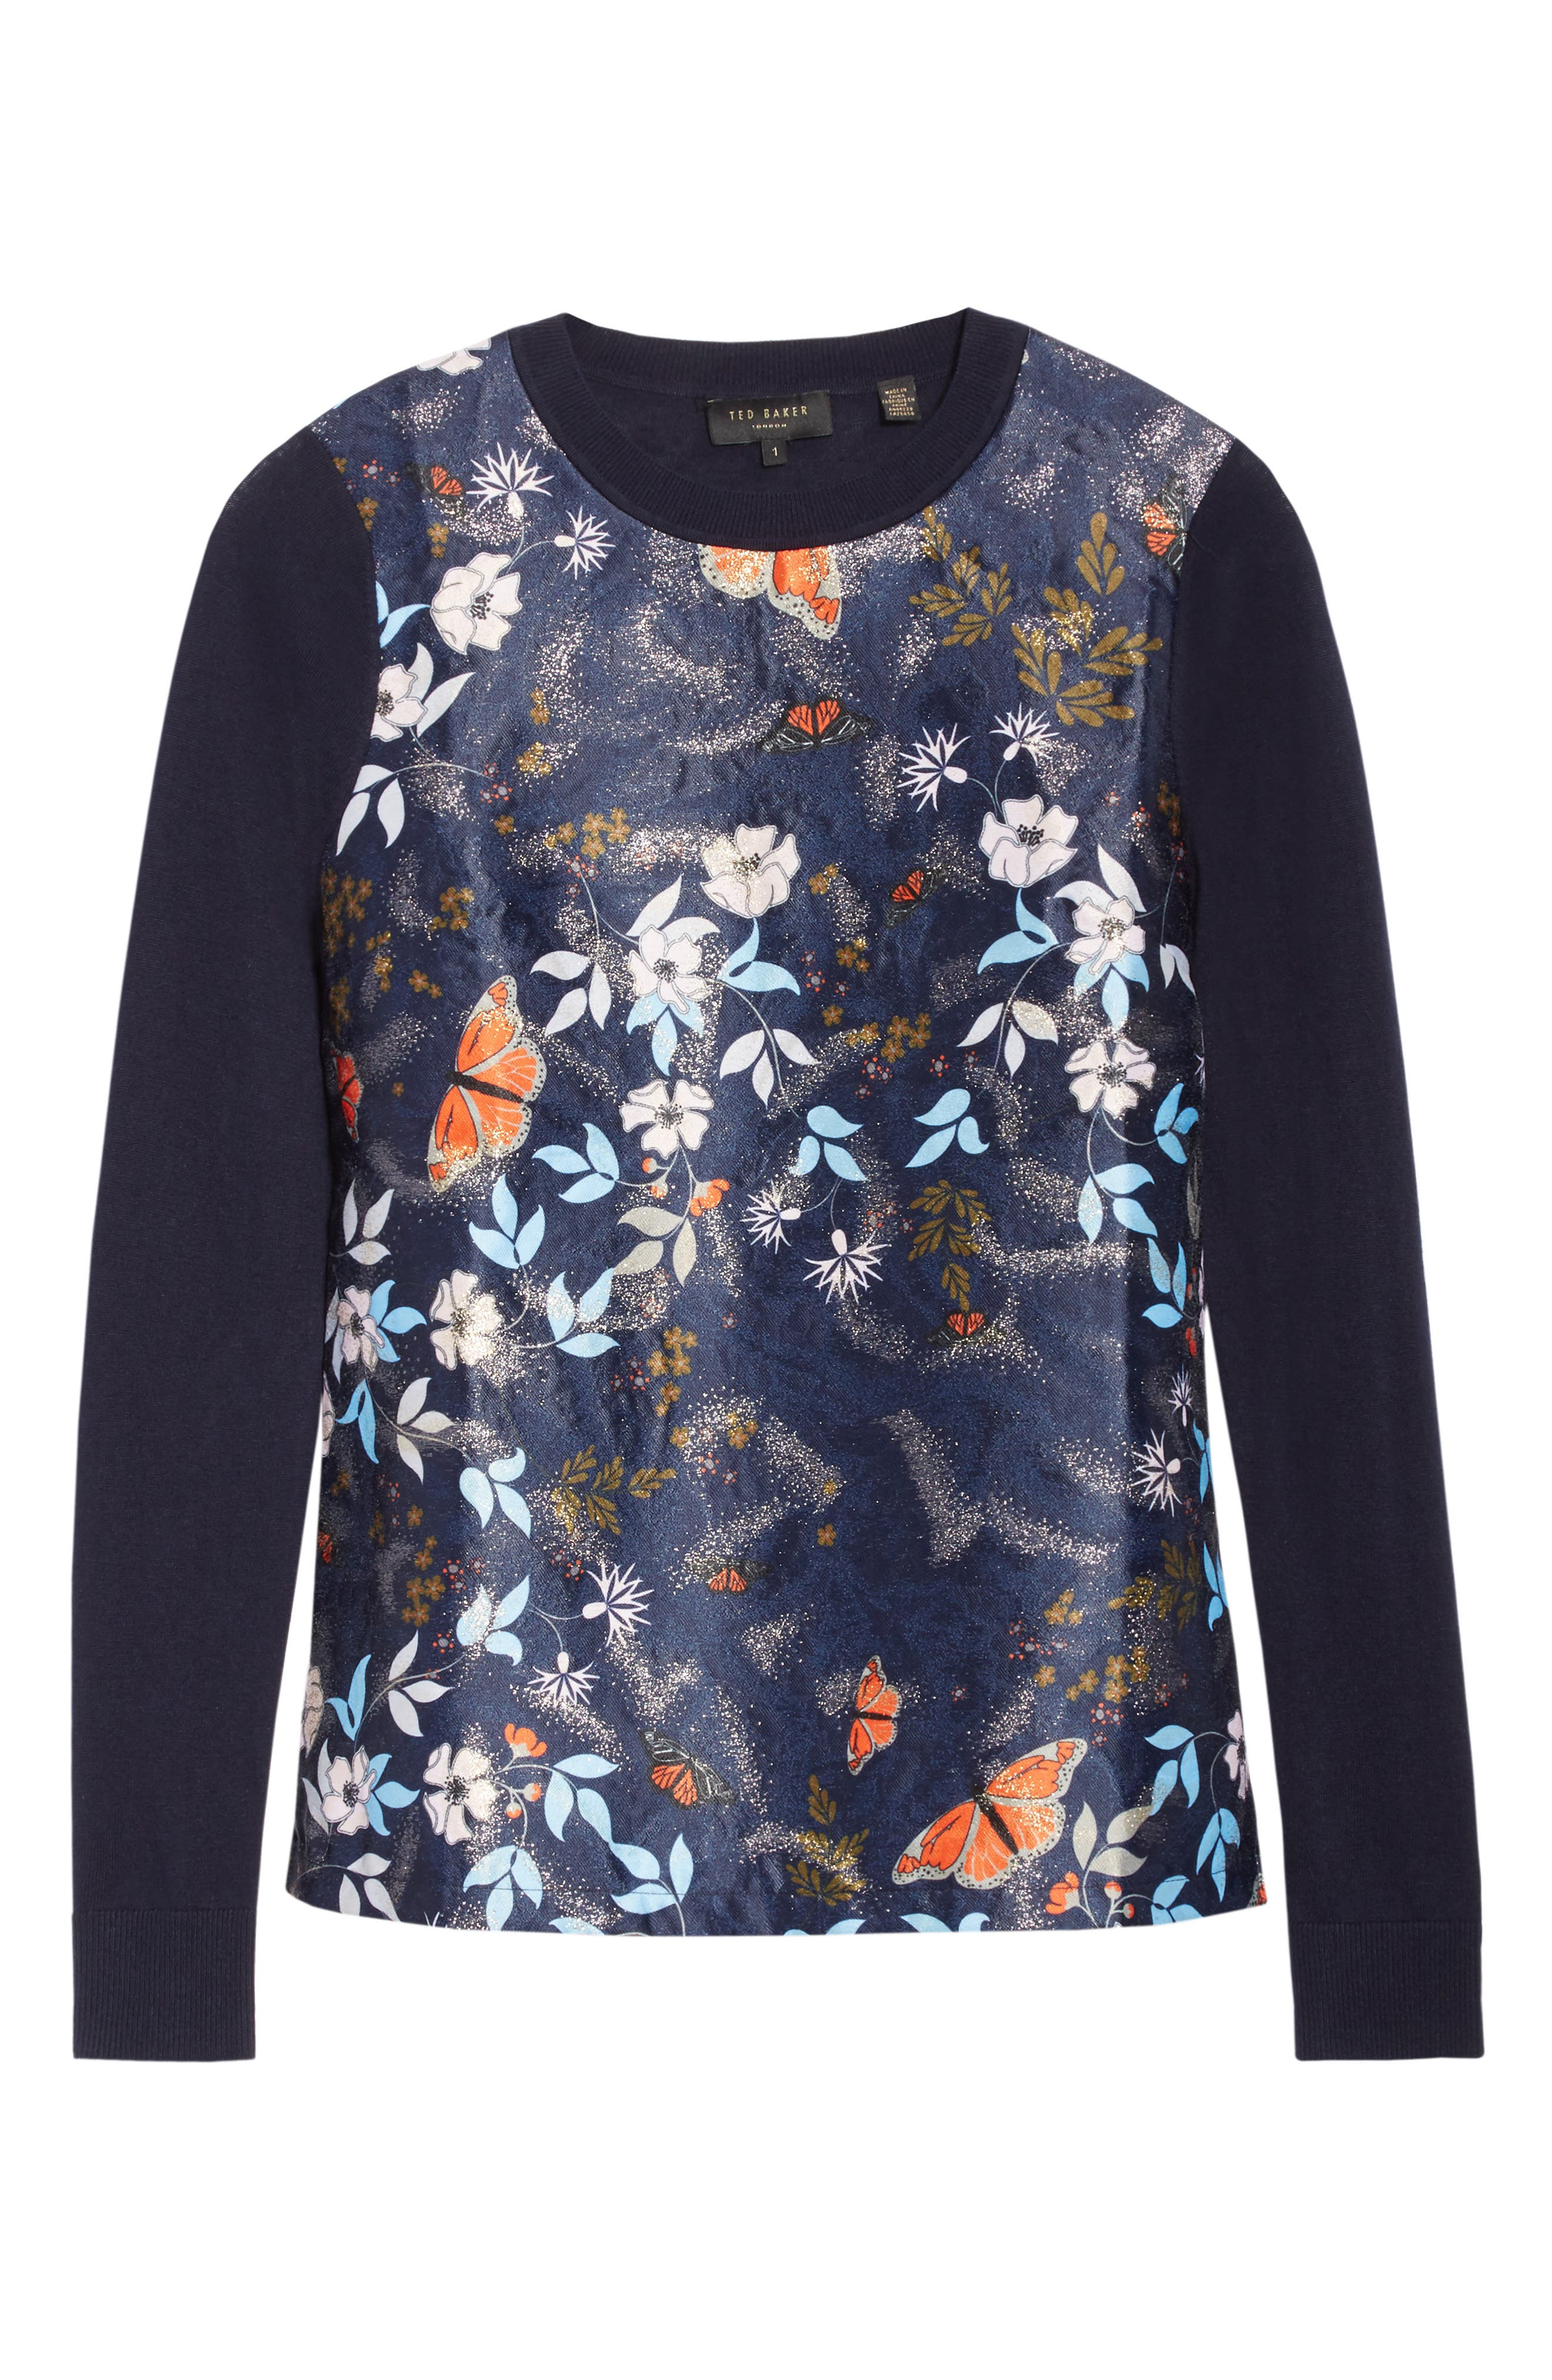 Khlo Kyoto Gardens Jacquard Sweater,                             Alternate thumbnail 6, color,                             410